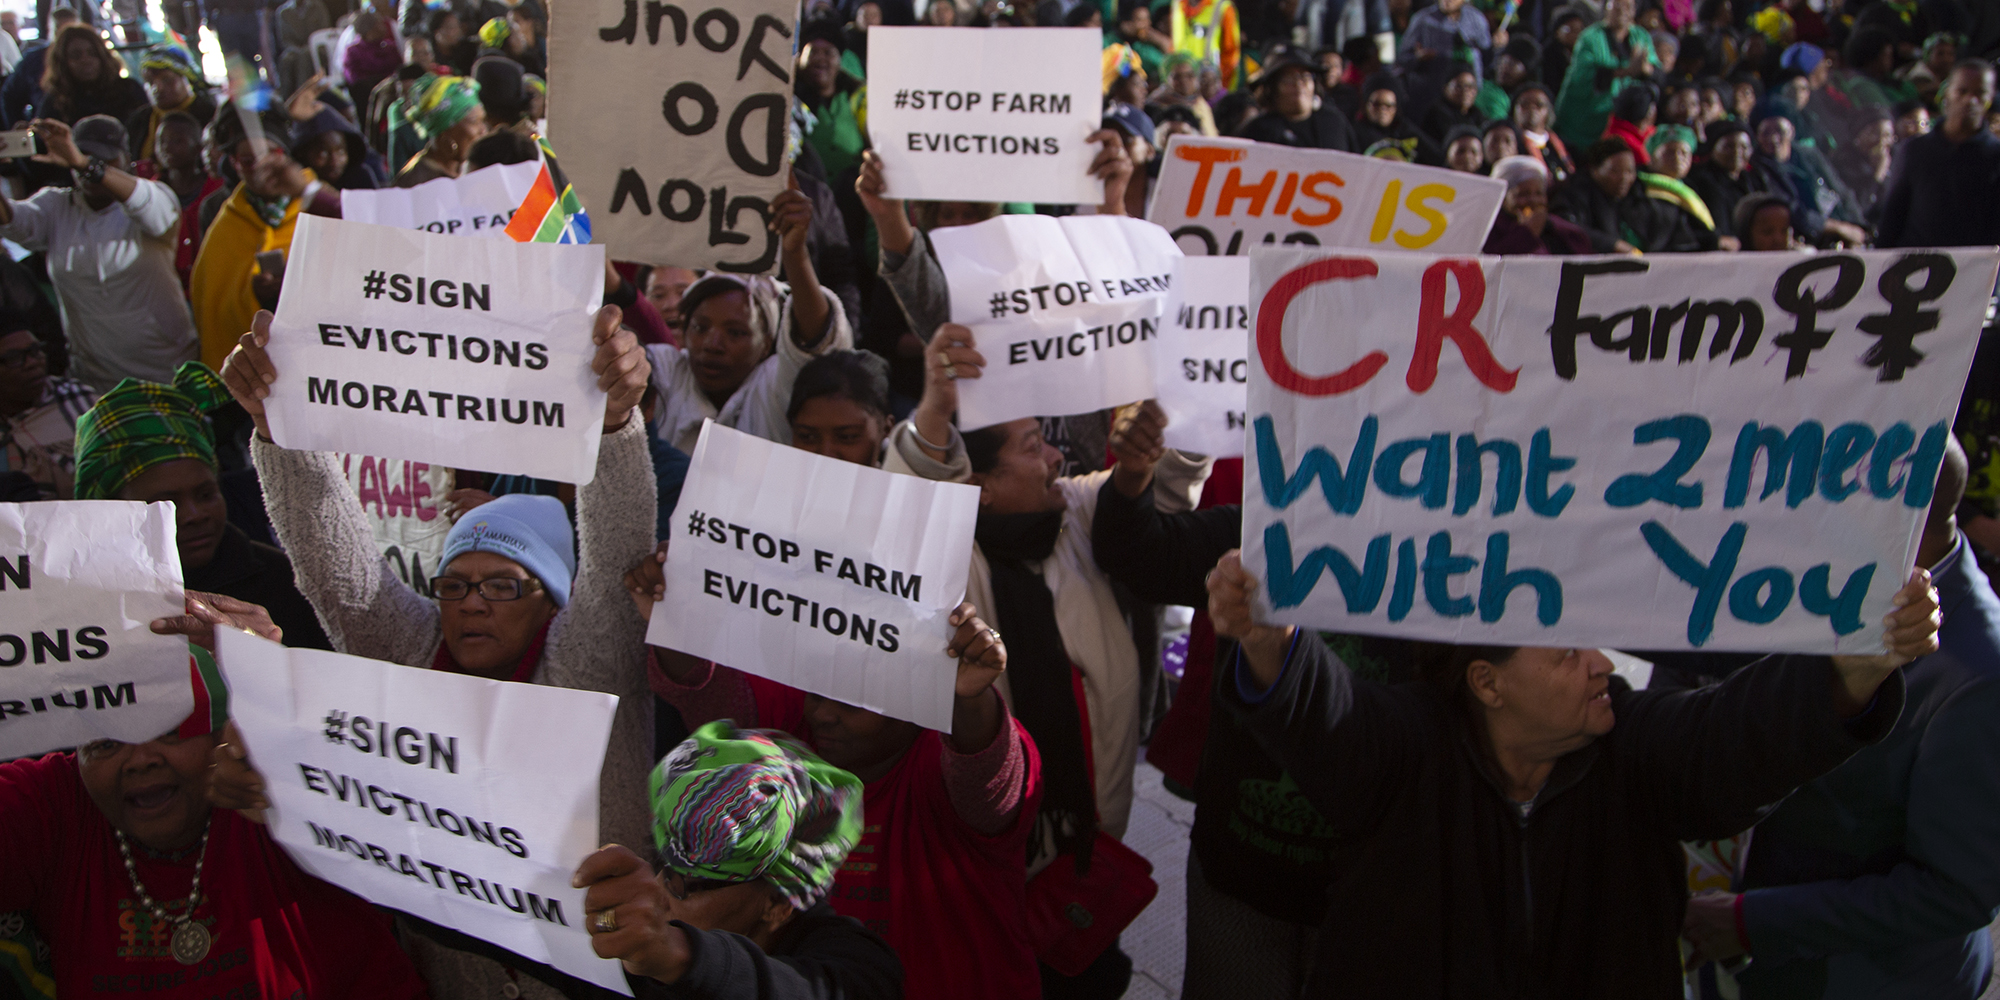 THE PROMISED LAND: Women on Farms Project calls for moratorium on farm evictions